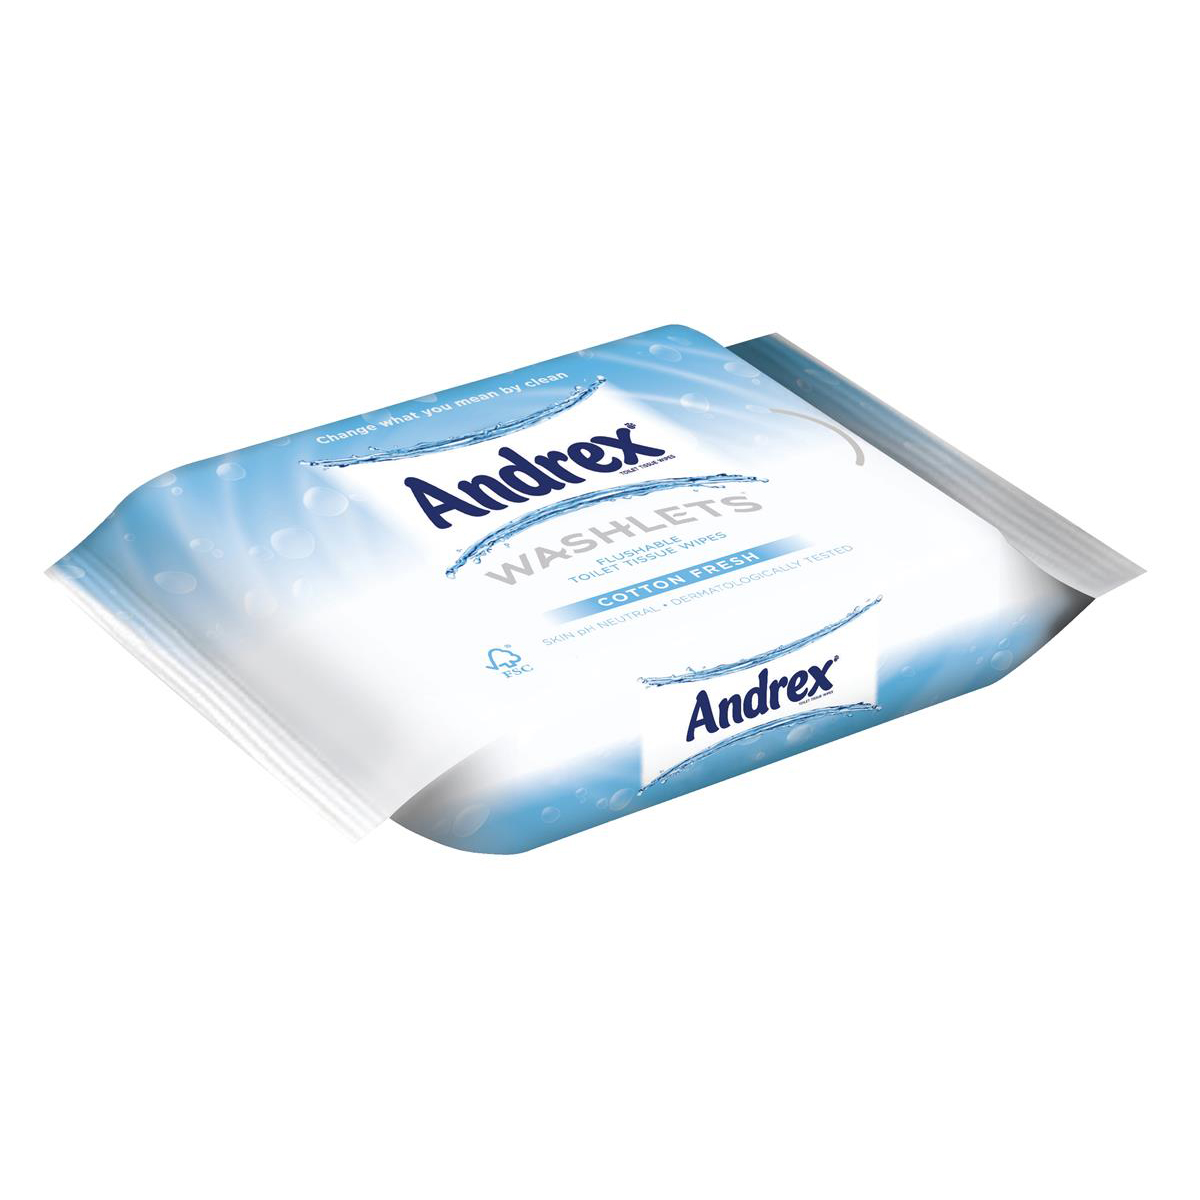 Image for Andrex Toilet Tissue Moist Washlets Flushable 42 Sheets 190x130mm Cotton Fresh Ref 0699204 [Pack 1]